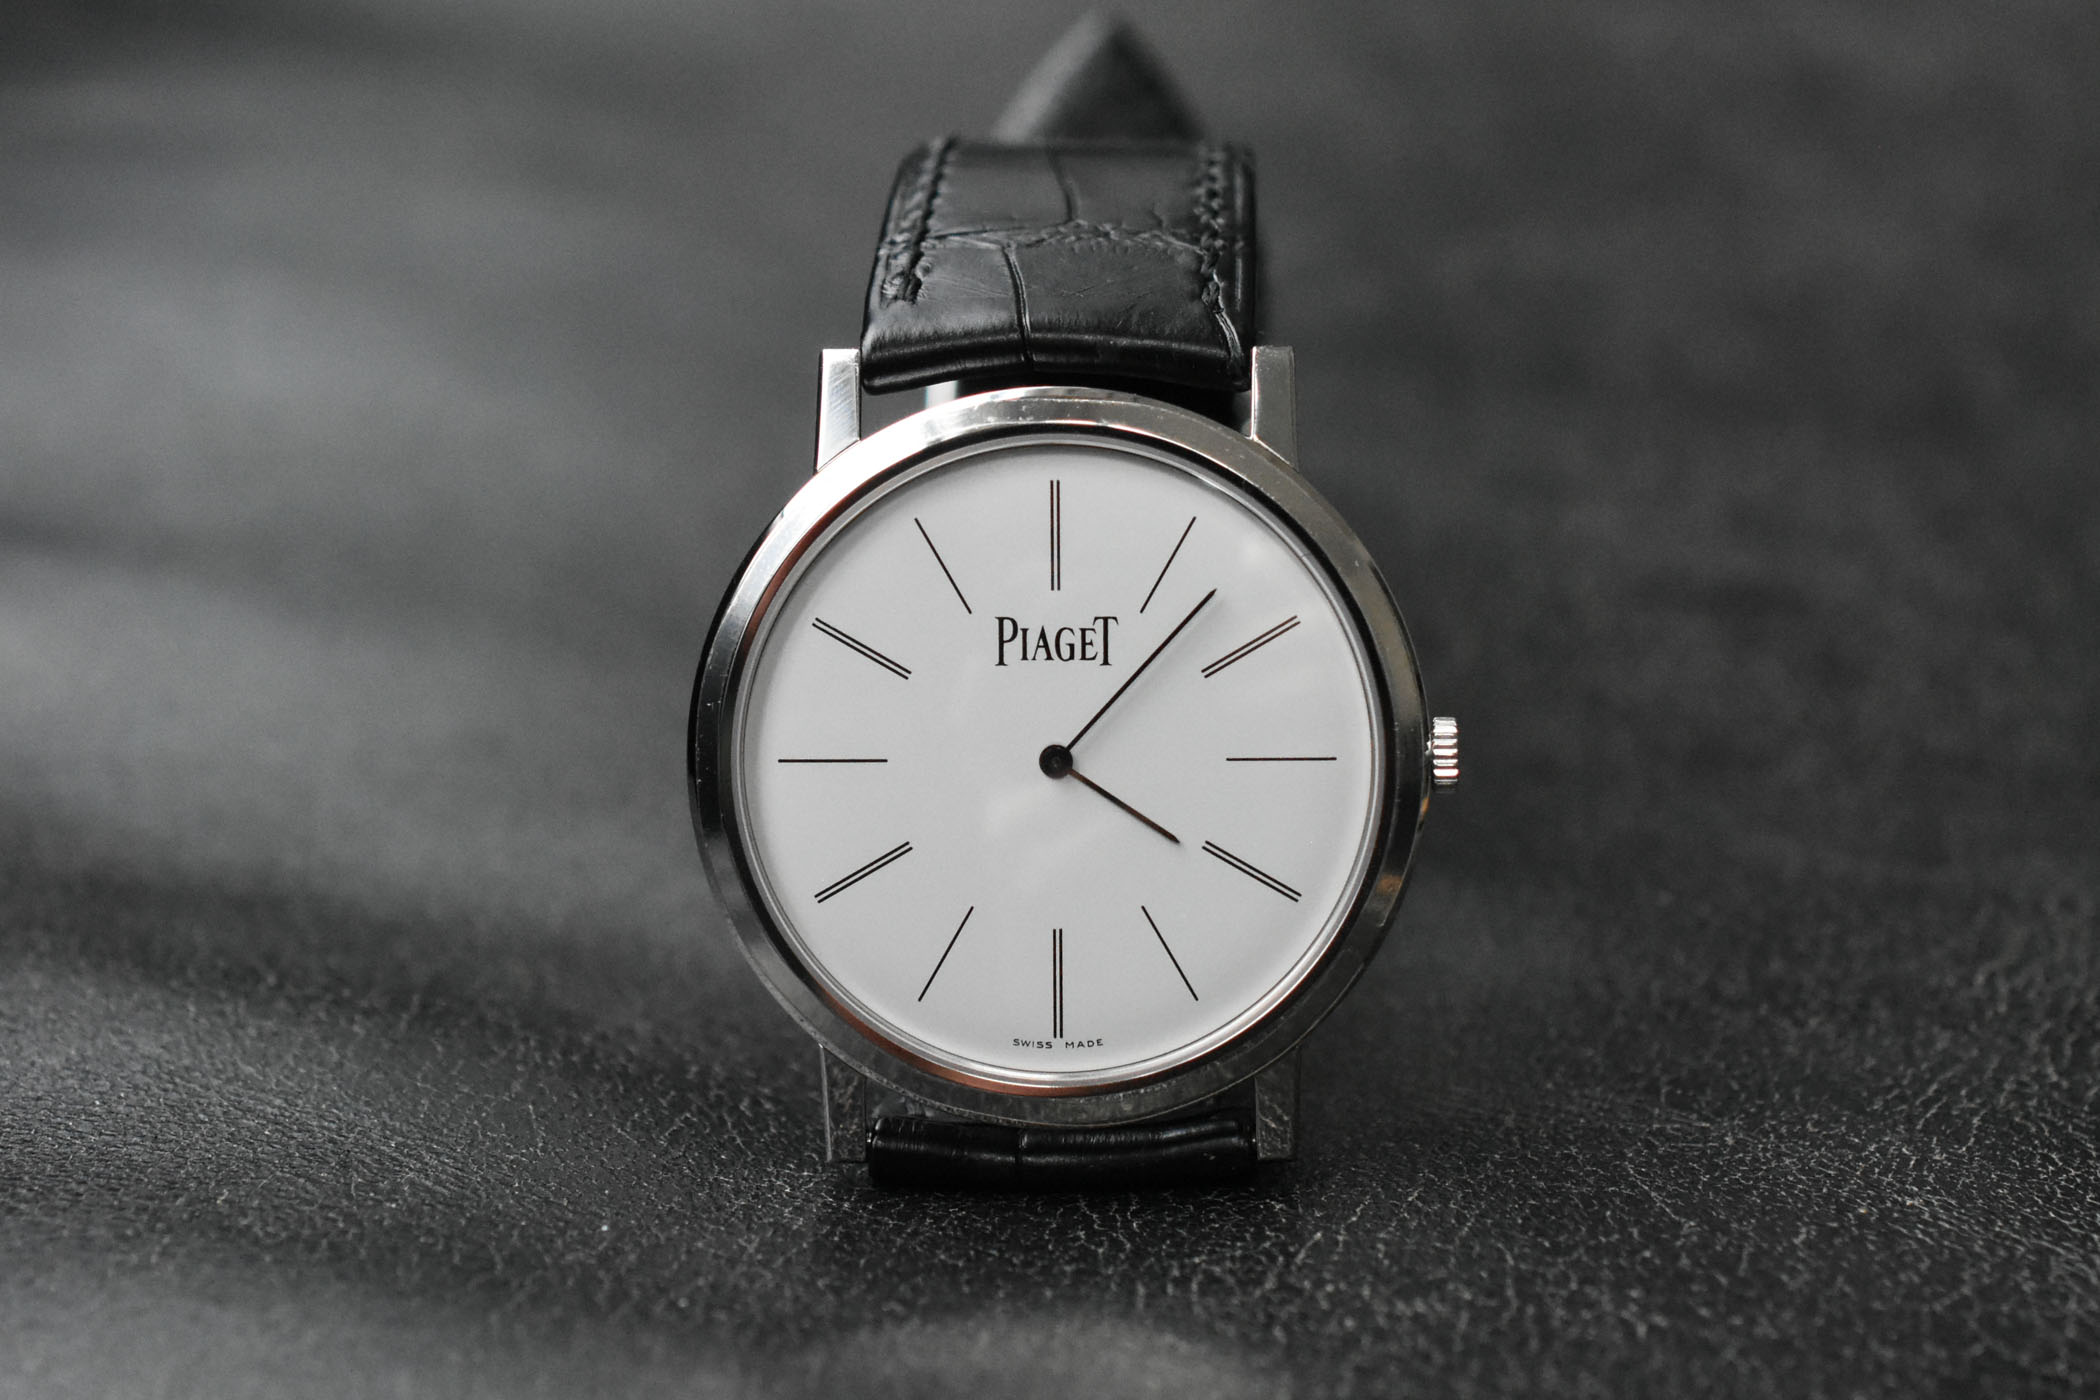 Reviewing the Piaget Altiplano